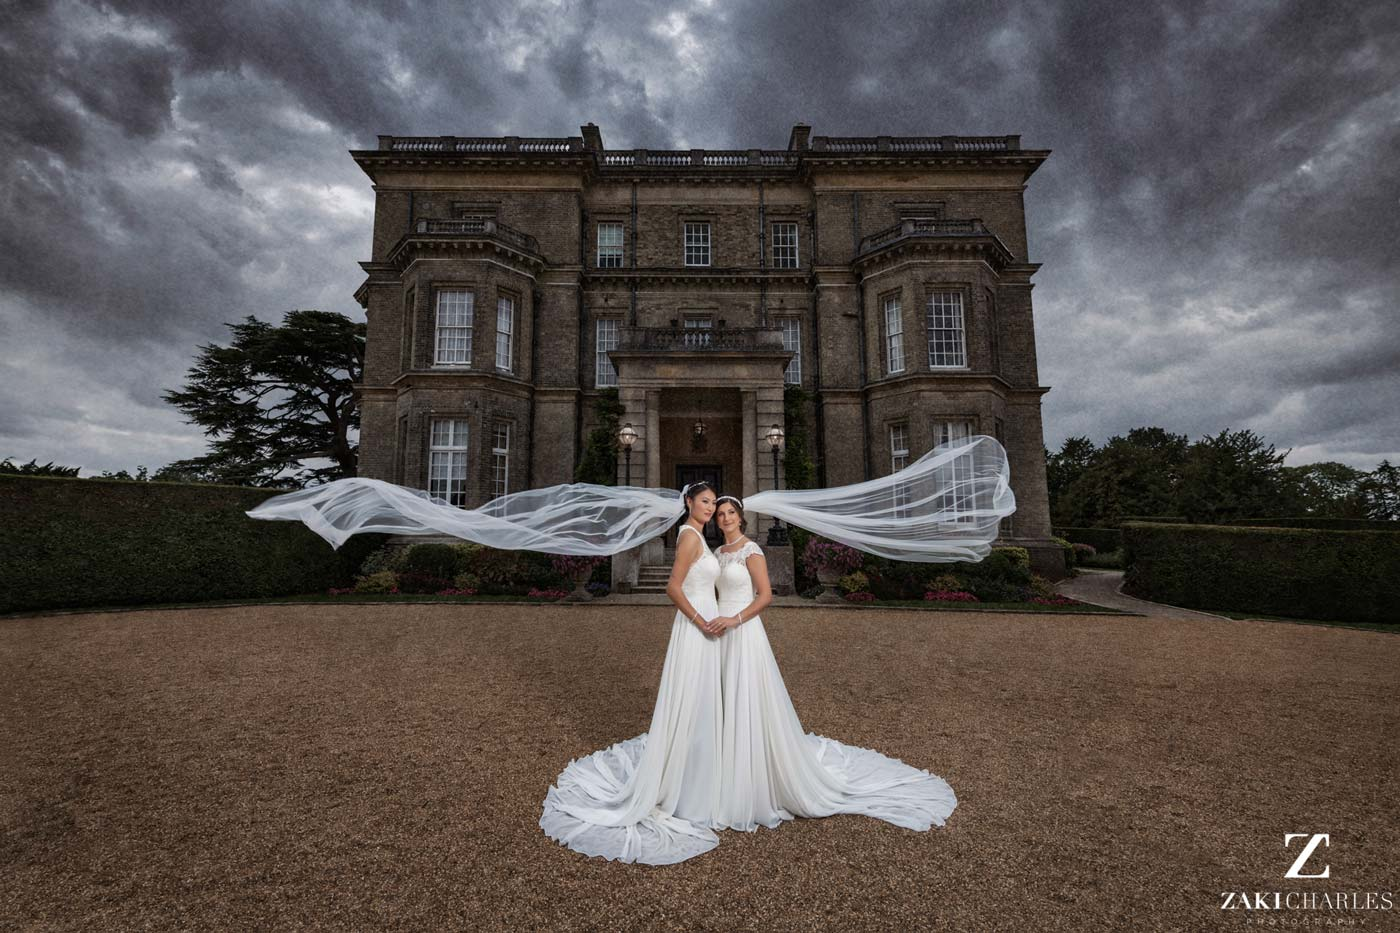 Brides veil flowing in the wind at Hedsor House